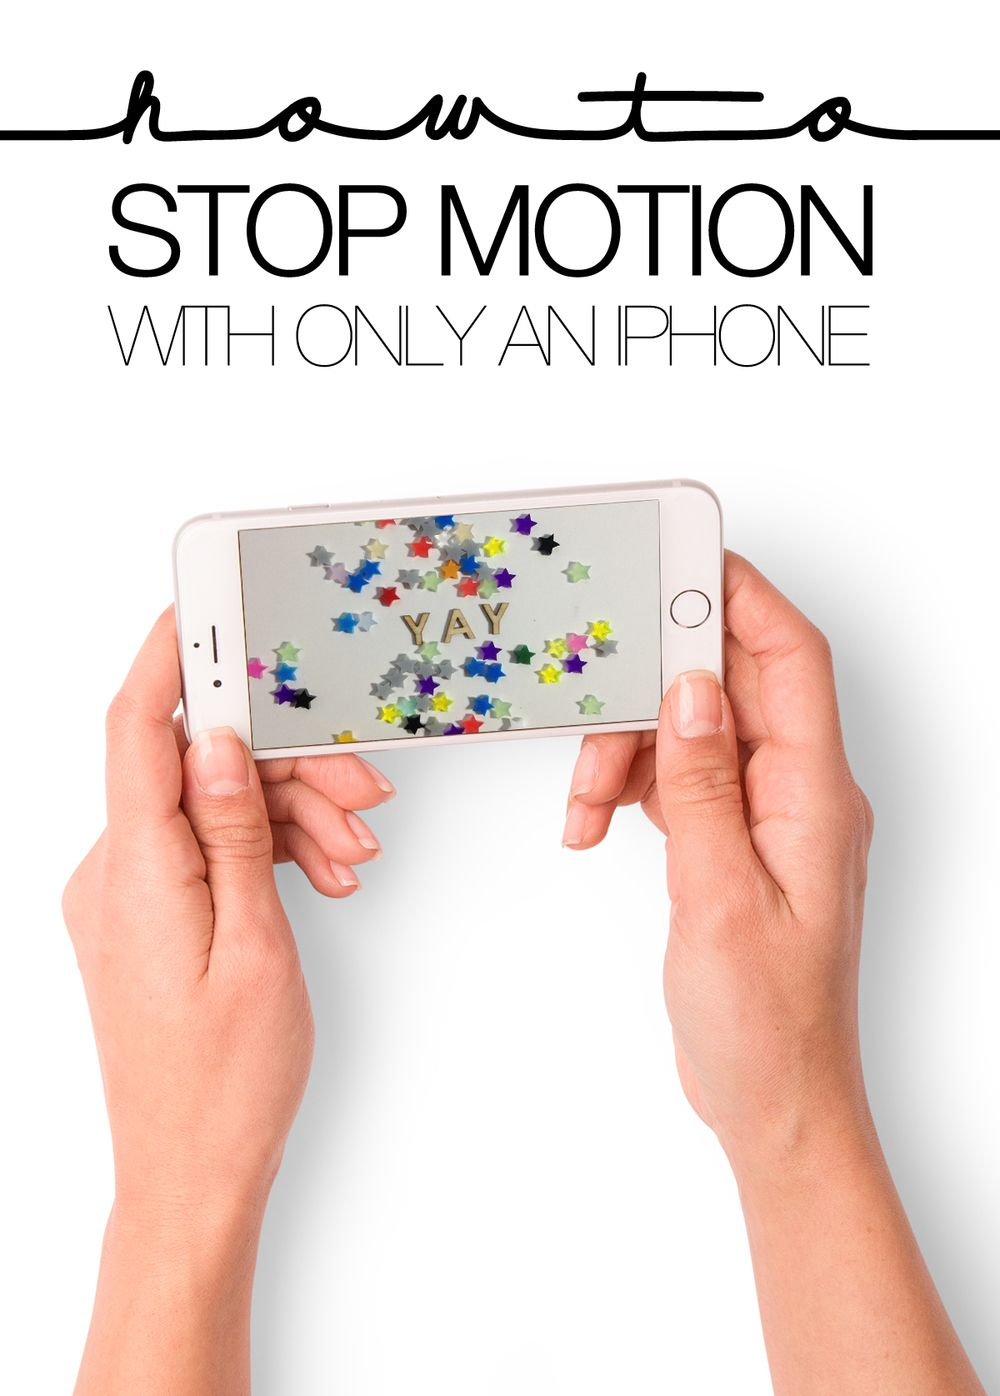 STOP MOTION ANIMATION (WITH JUST AN IPHONE) in 2018 | Animation ...